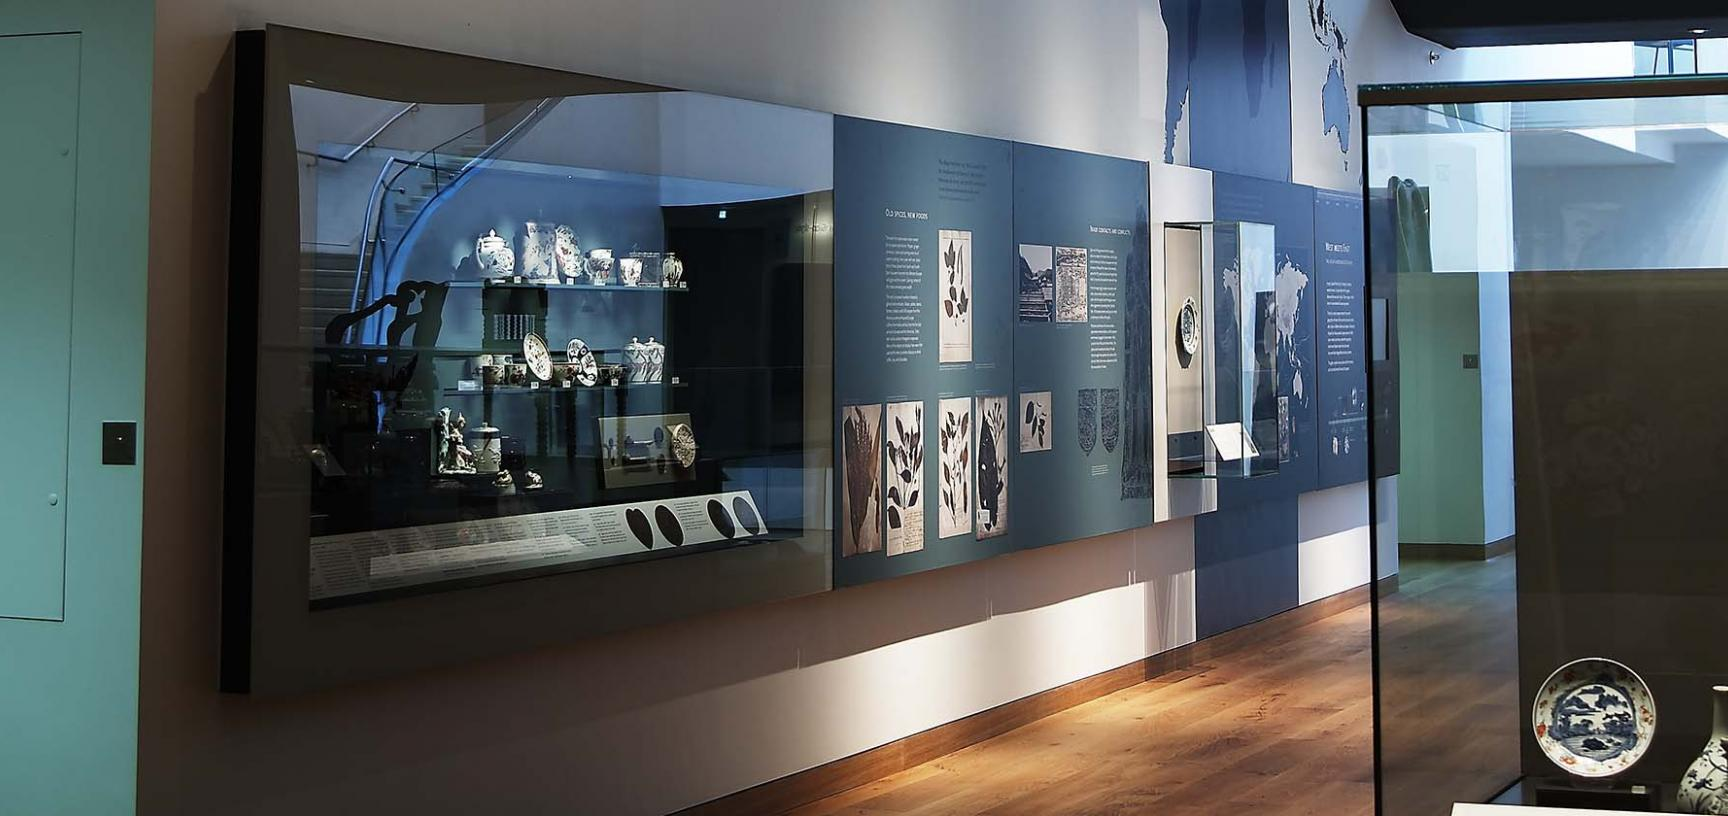 The West Meets East Gallery at the Ashmolean Museum